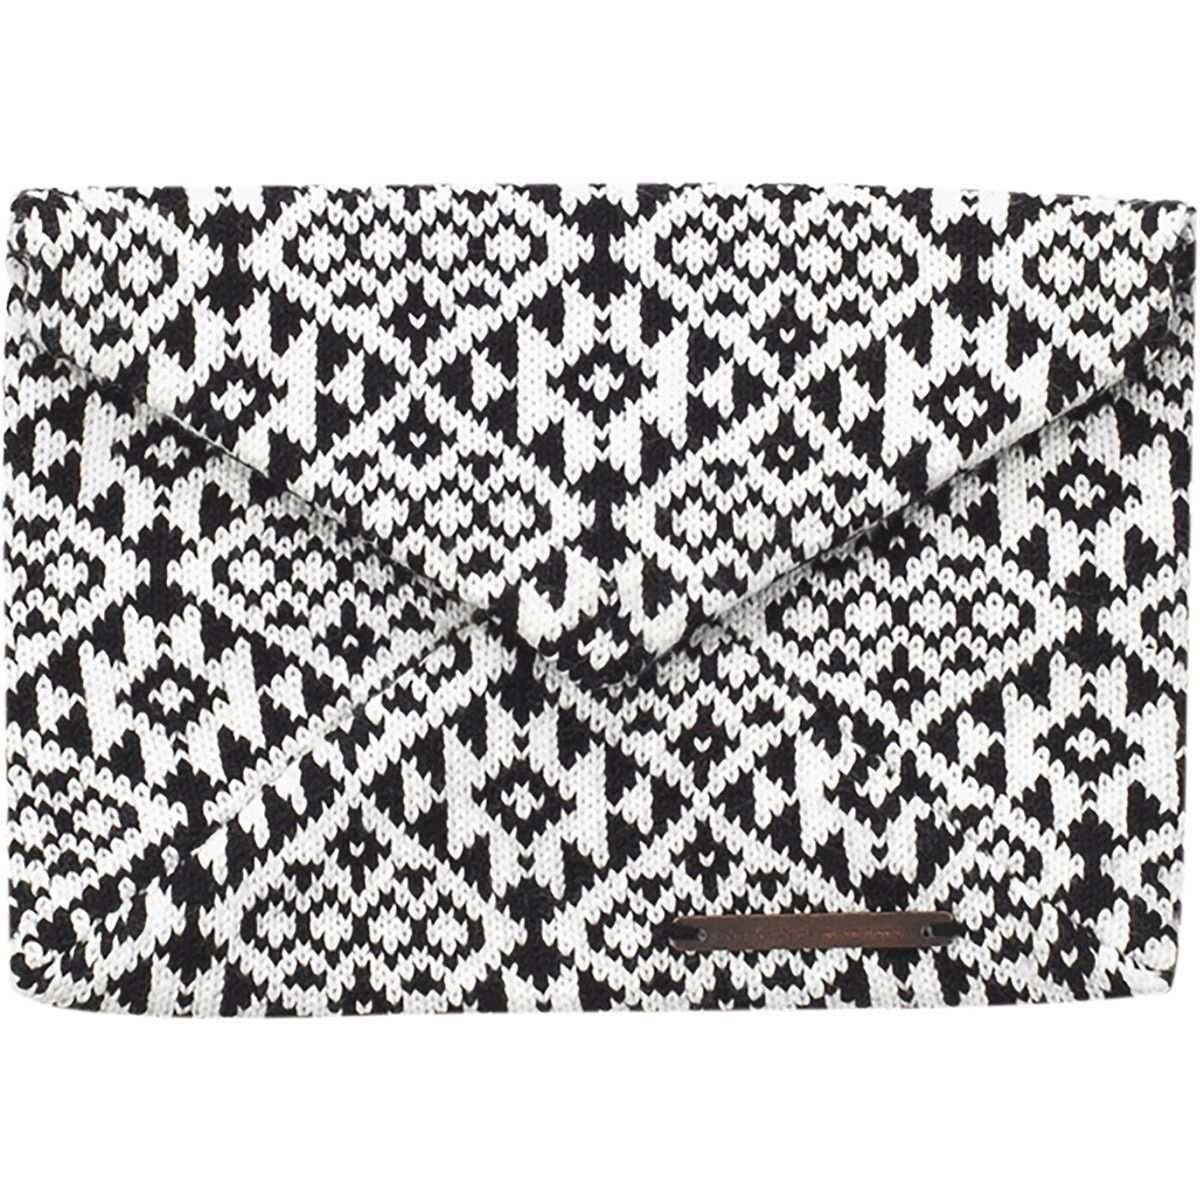 Envelope Clutch // White and Black from Society B